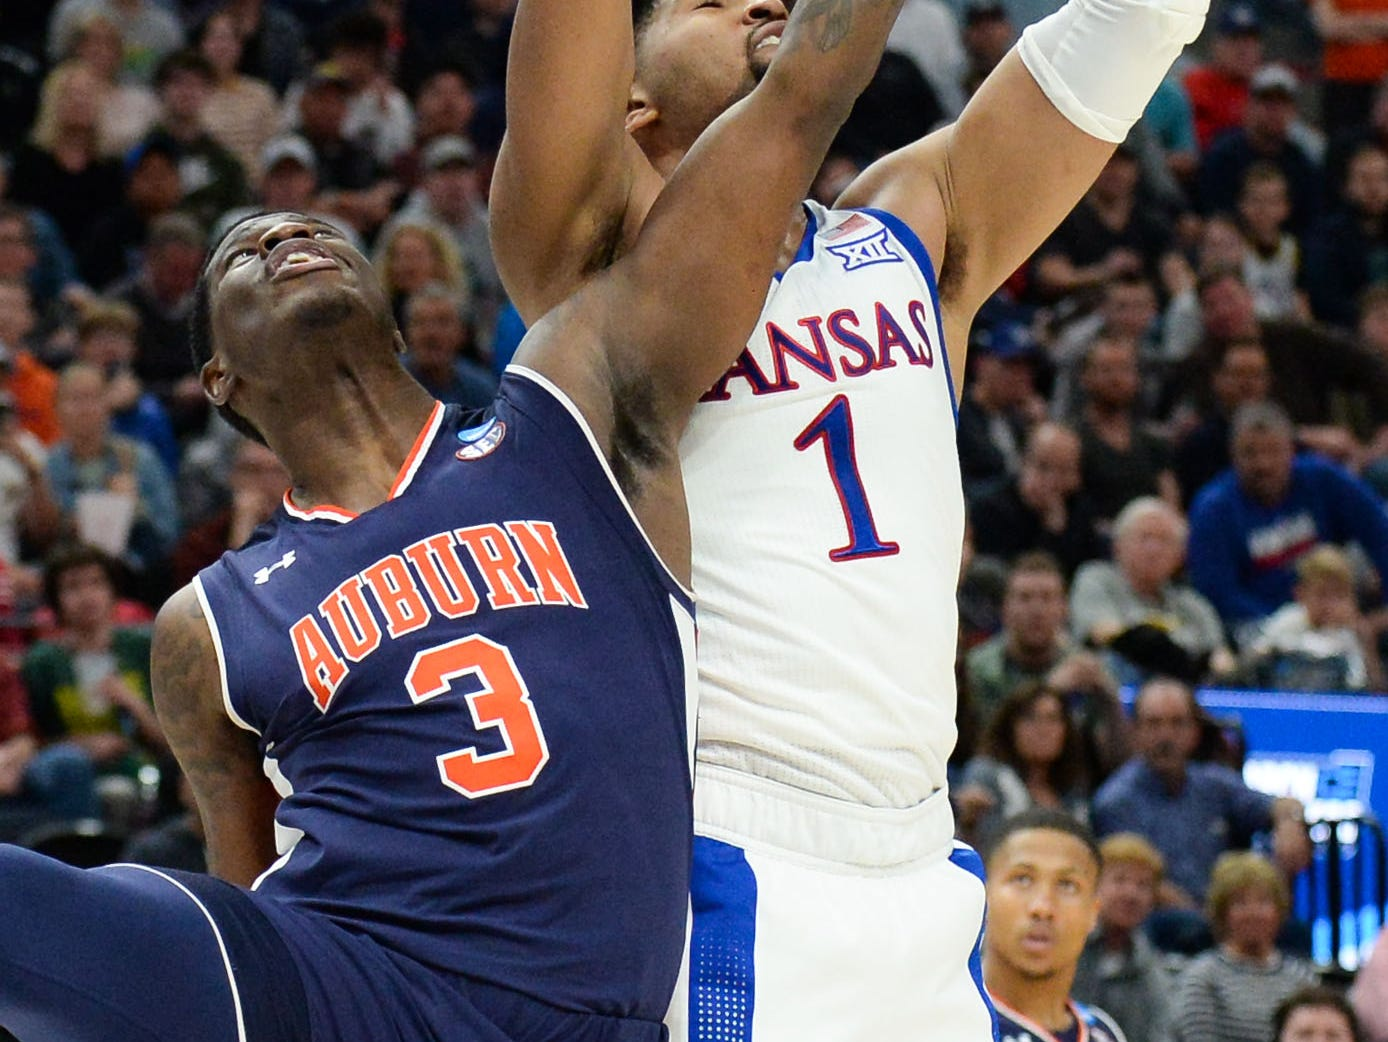 Mar 23, 2019; Salt Lake City, UT, USA; Kansas Jayhawks forward Dedric Lawson (1) grabs a rebound ahead of Auburn Tigers forward Danjel Purifoy (3) during the first half in the second round of the 2019 NCAA Tournament at Vivint Smart Home Arena. Mandatory Credit: Gary A. Vasquez-USA TODAY Sports